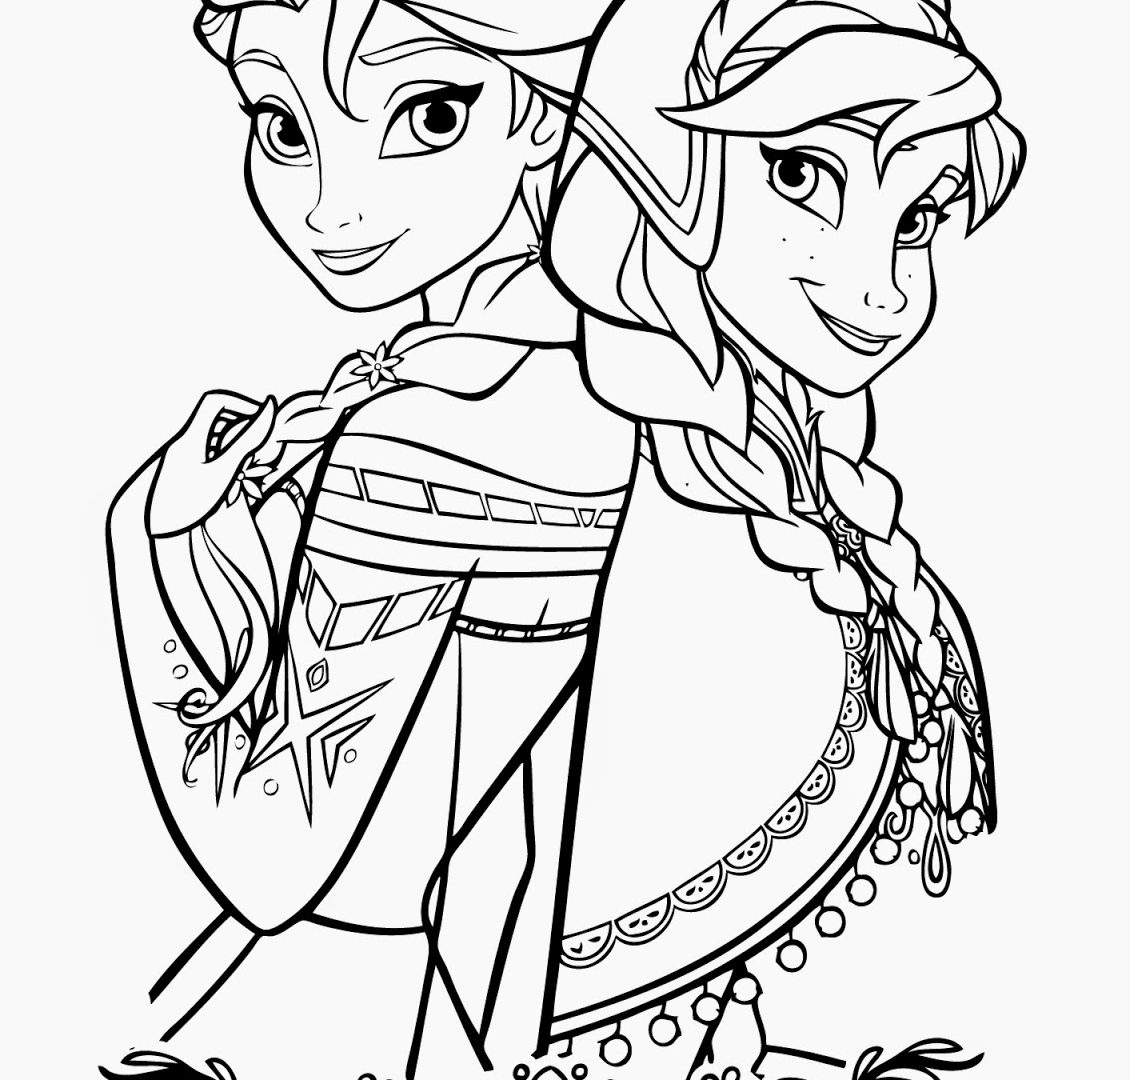 1130x1080 The Frozen Coloring Pages Disney Elsa And Anna Cartoons Olaf